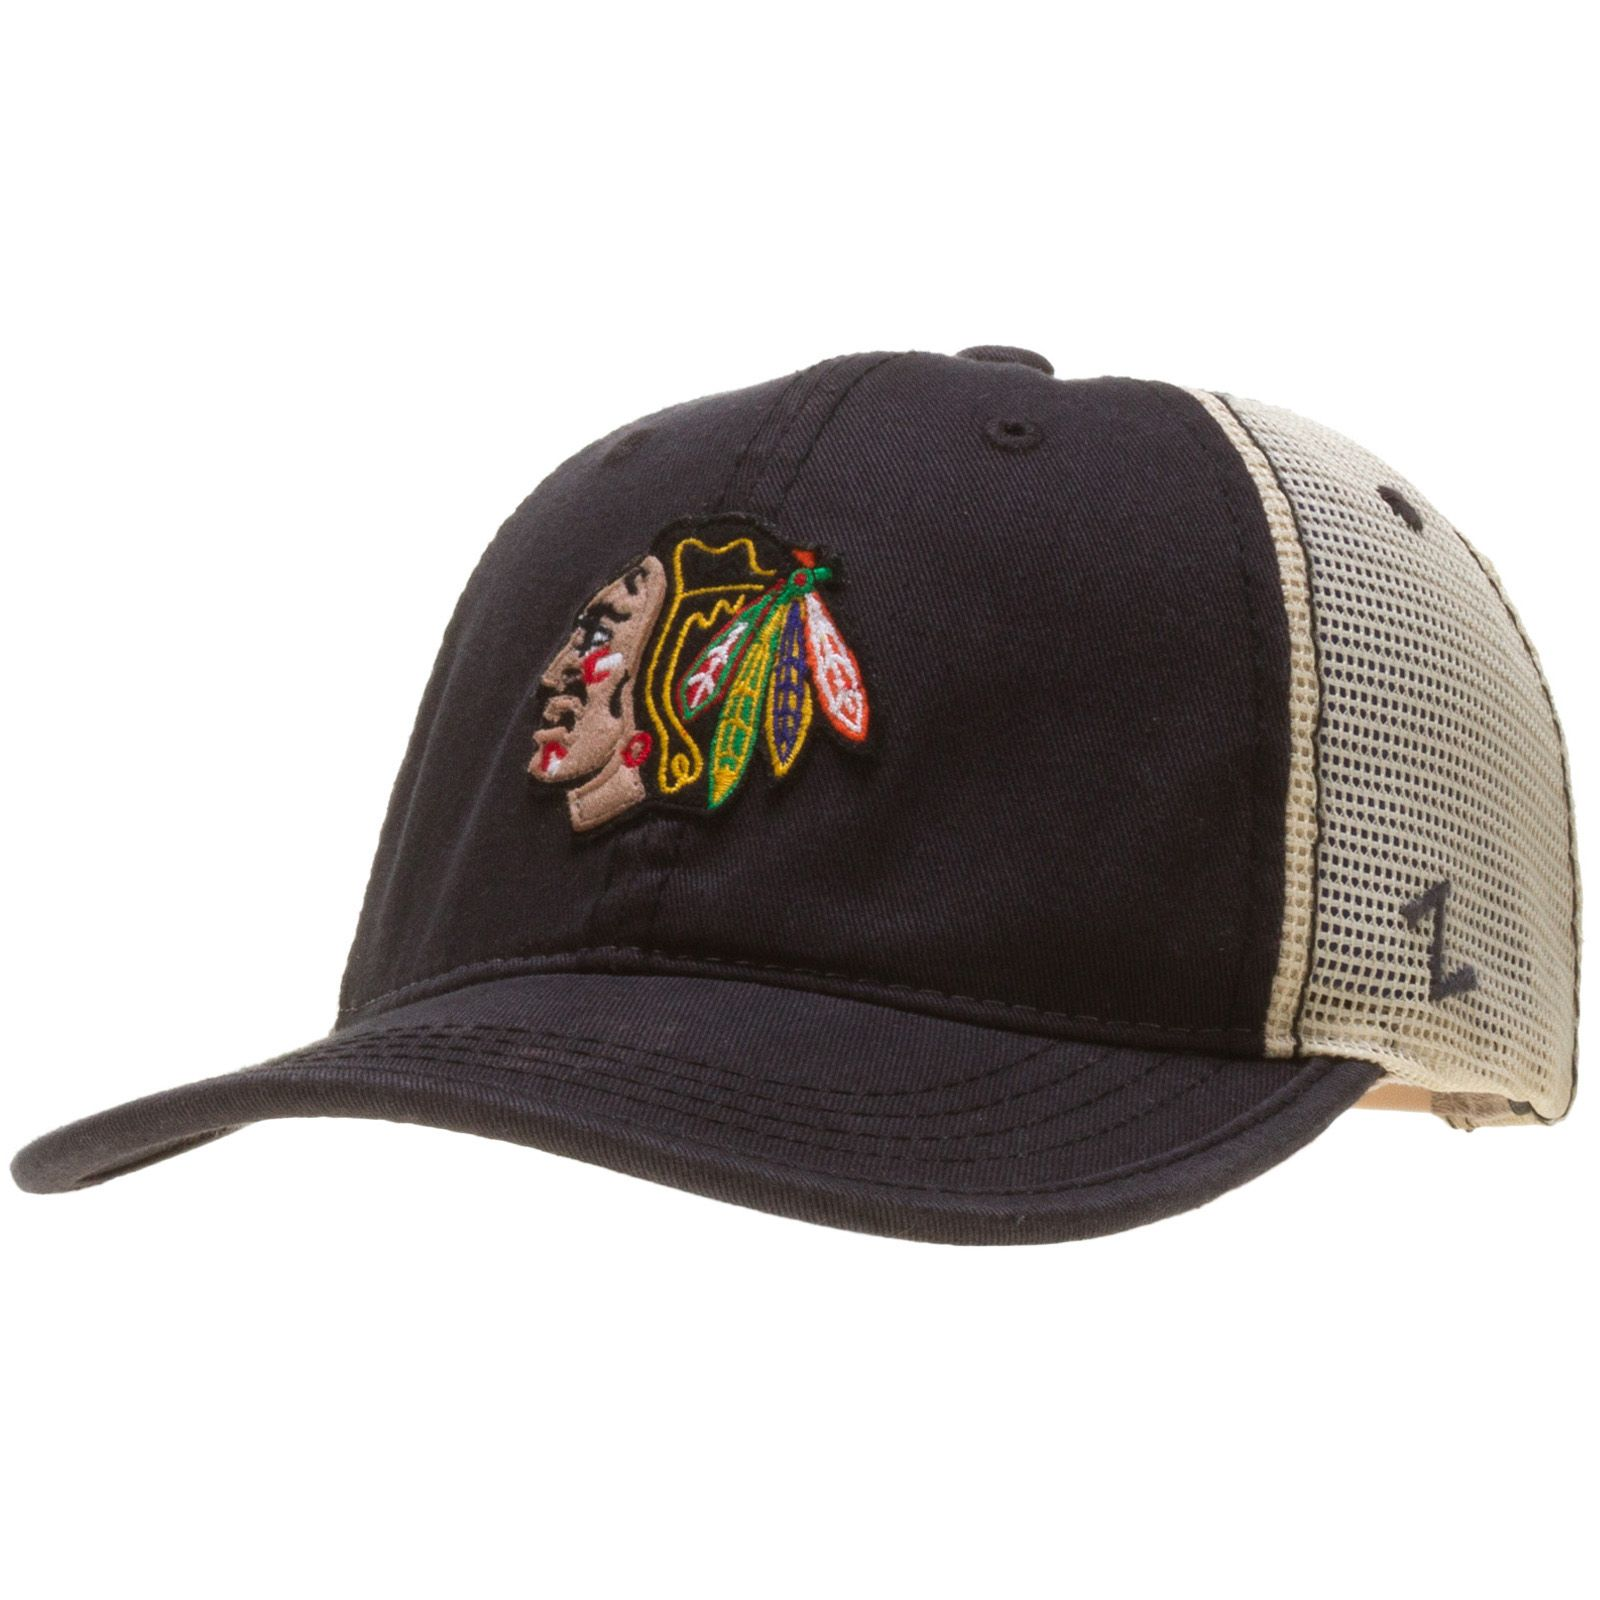 8e754053114414 Chicago Blackhawks Stone Mesh Relaxed Wash Adjustable Hat #Chicago # Blackhawks #ChicagoBlackhawks